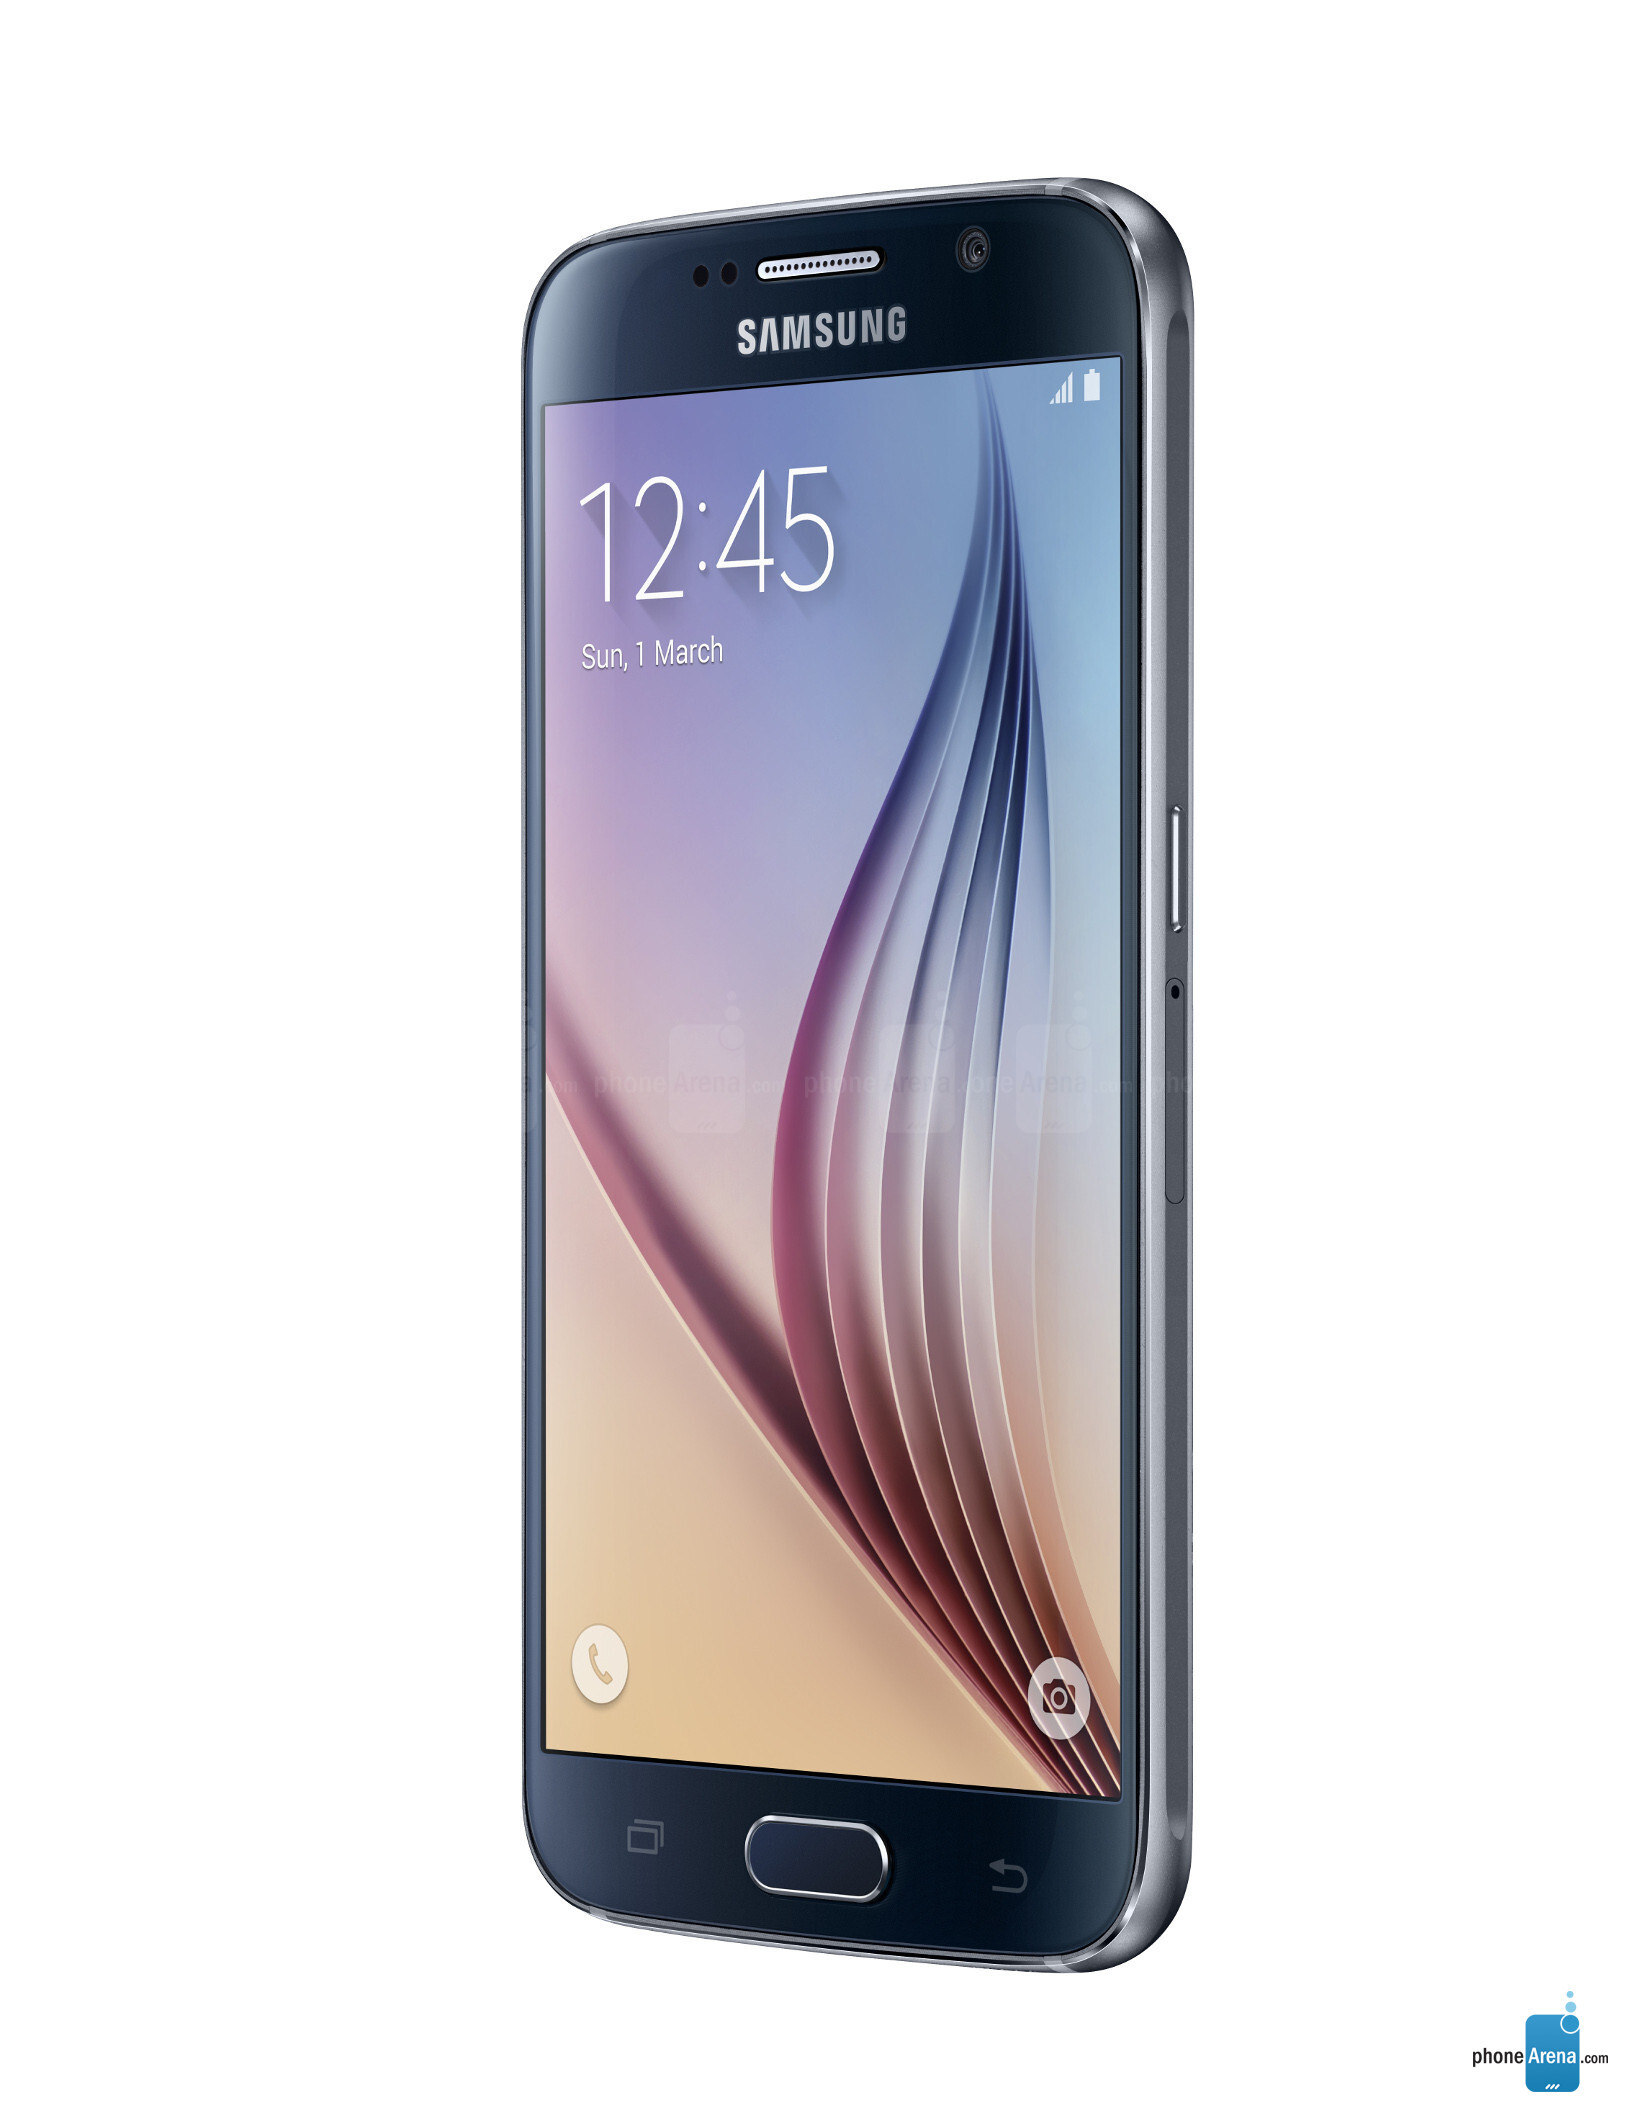 It supports samsung galaxy edge and edge plus (+) drivers. Samsung Galaxy Free  Driver is a series of Android-powered mobile computing devices designed, manufactured and marketed by  Samsung Electronics. The product line includes the Galaxy S series of high-end smartphones, the  Galaxy Tab...